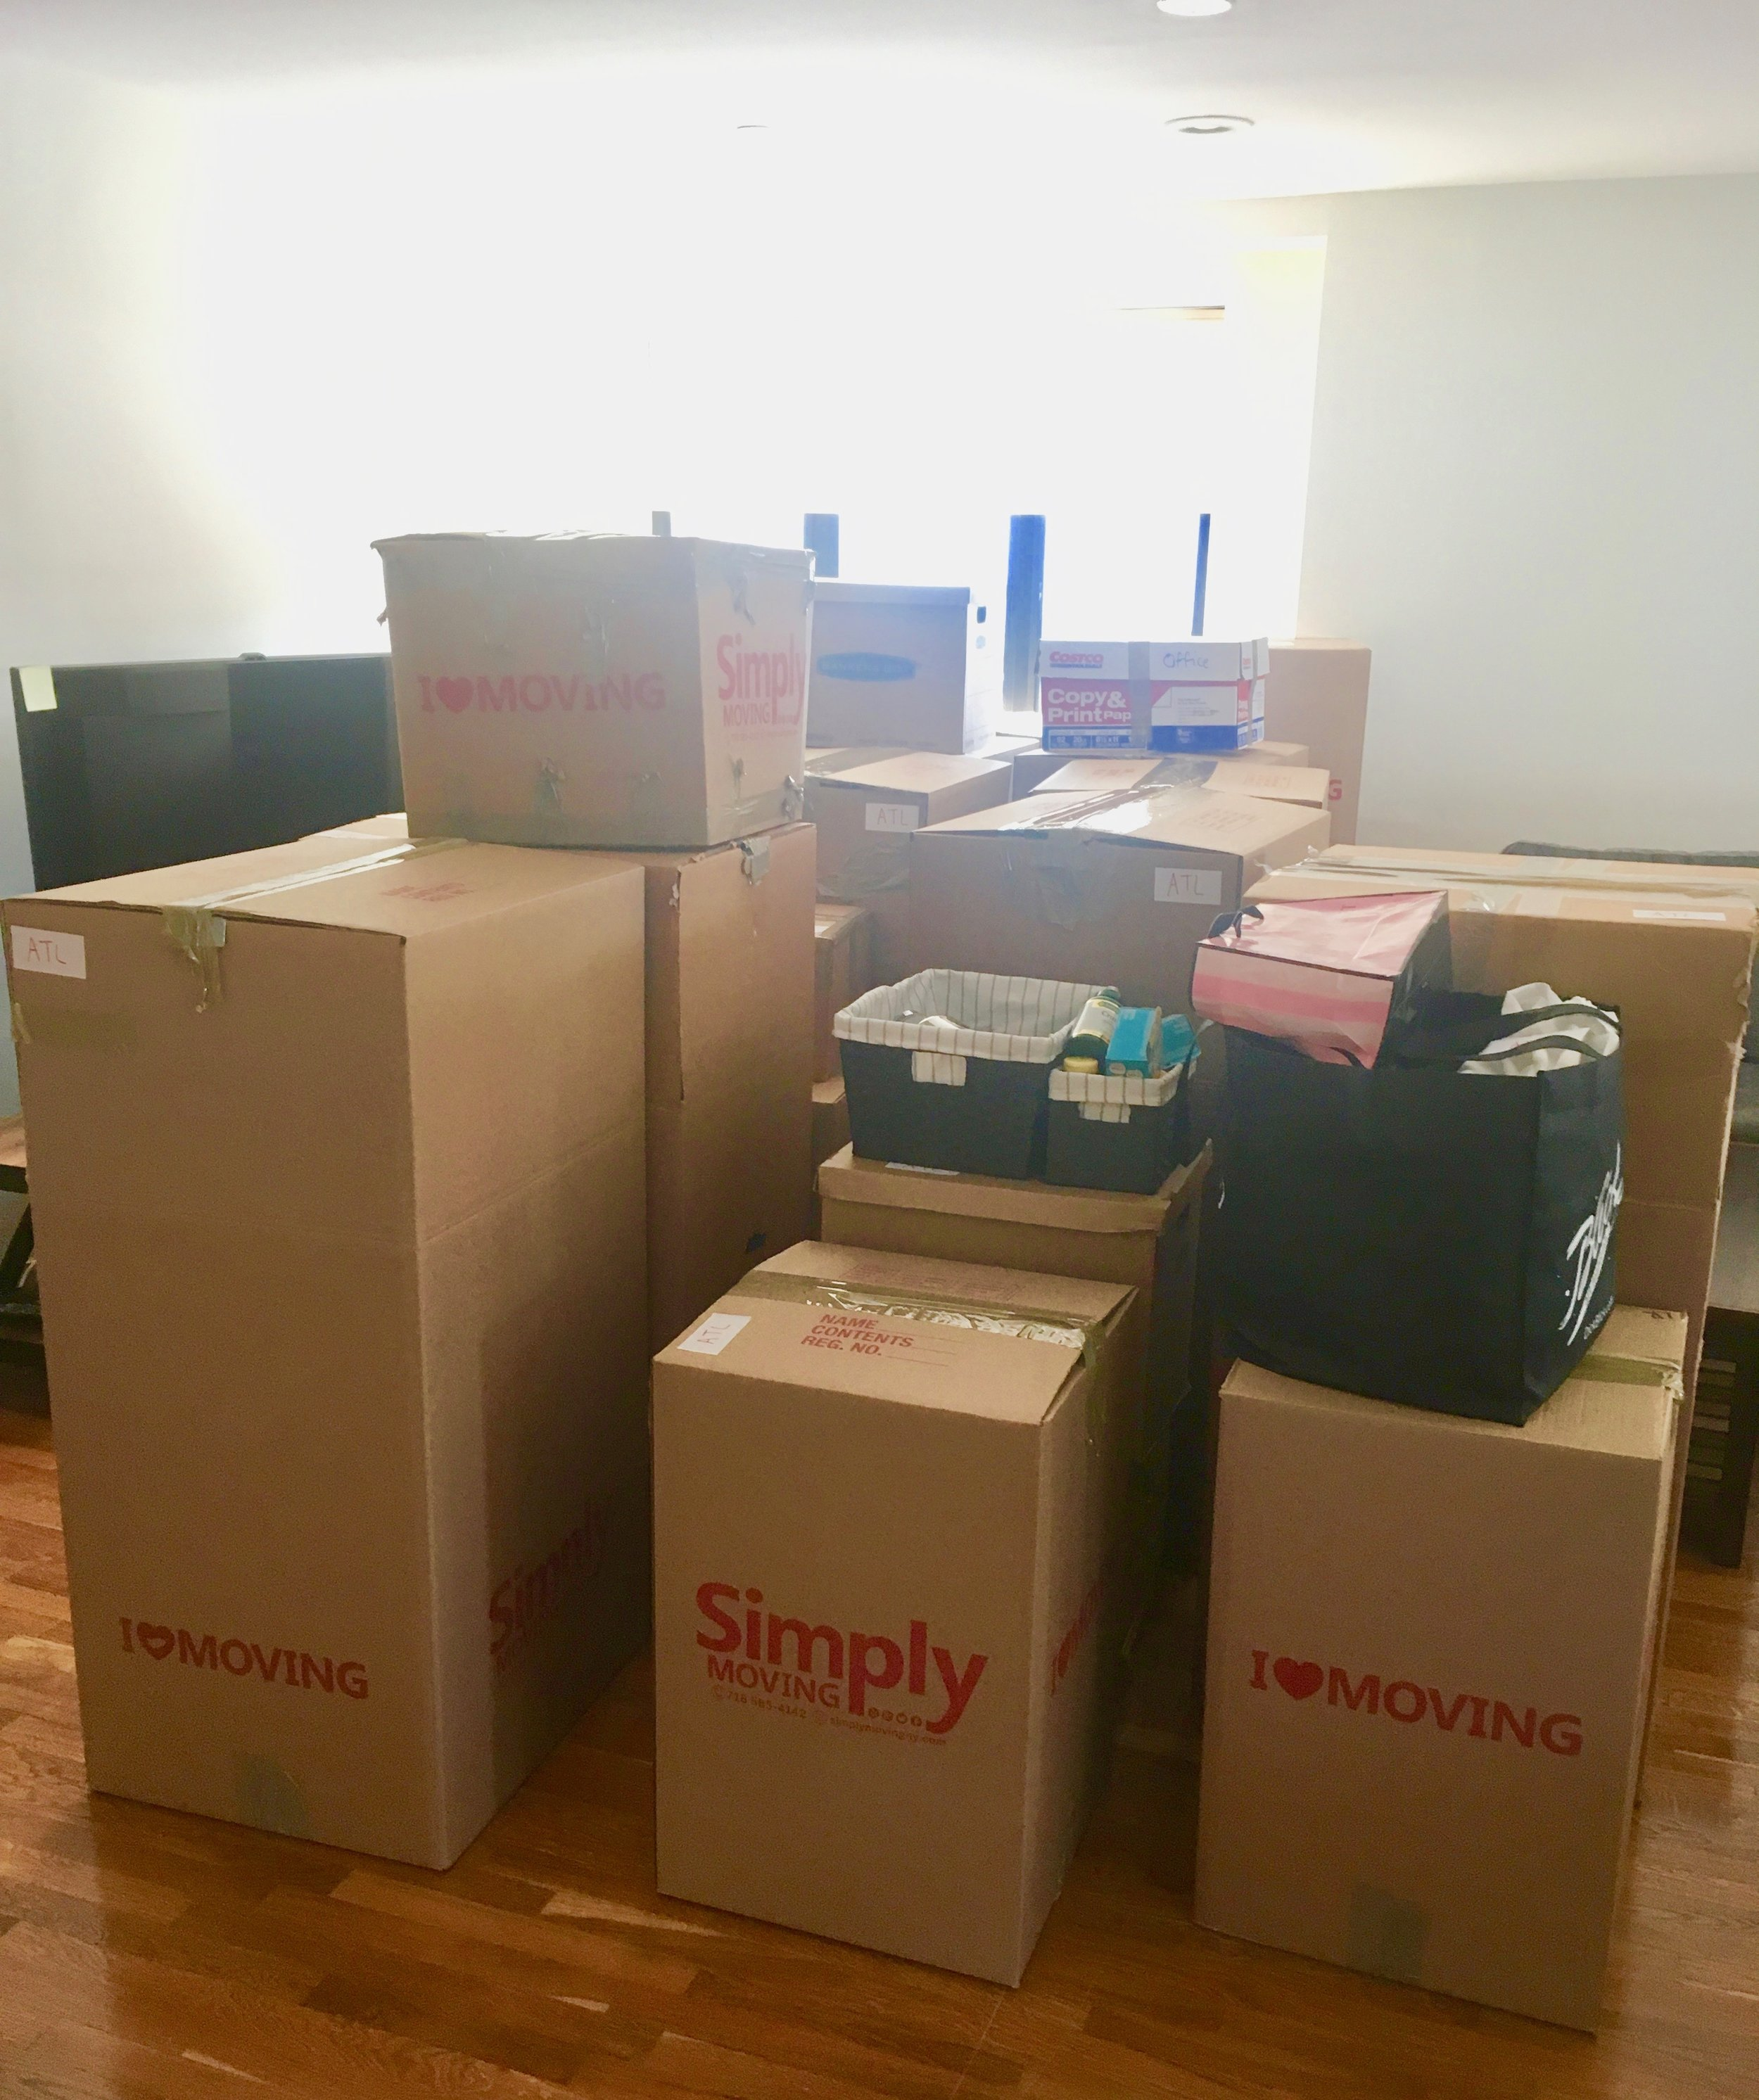 Here come the boxes!